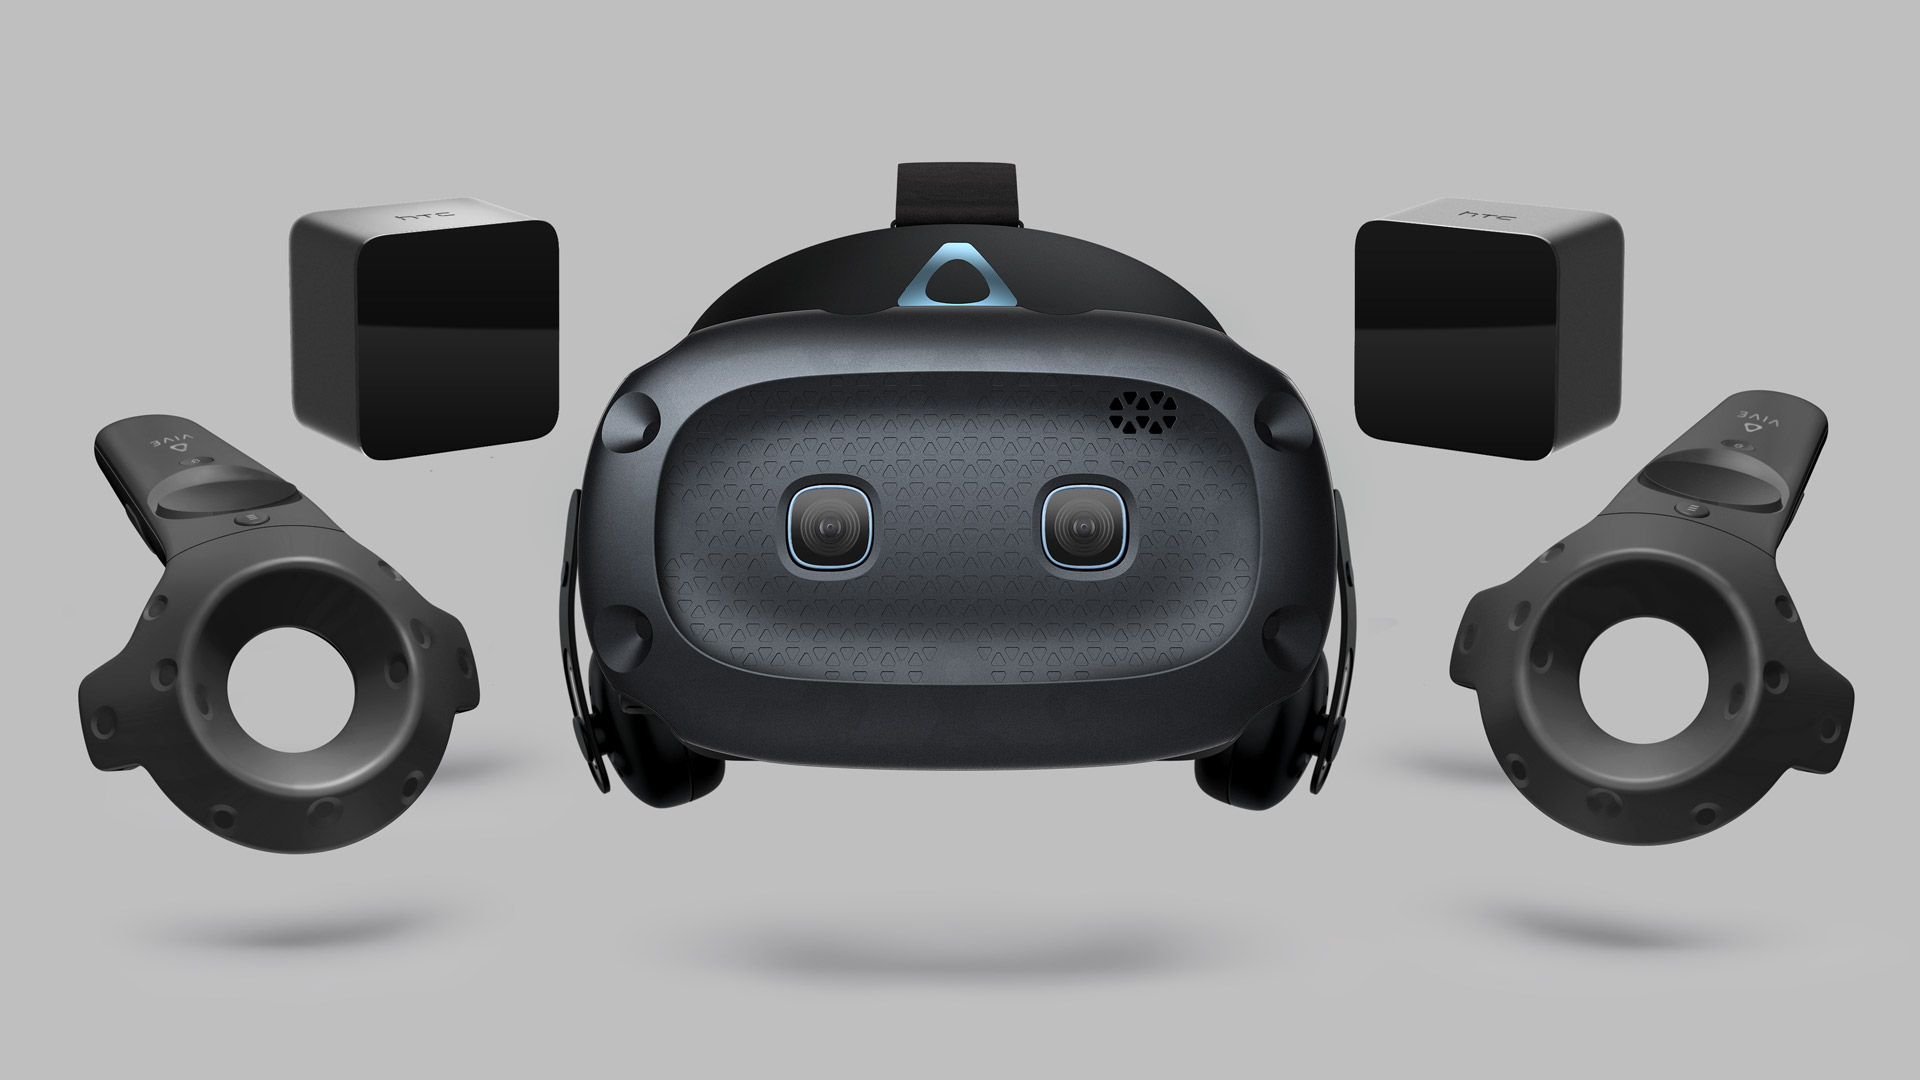 HTC Is Releasing Three New Vive Cosmos Headsets: Elite, Play, & XR